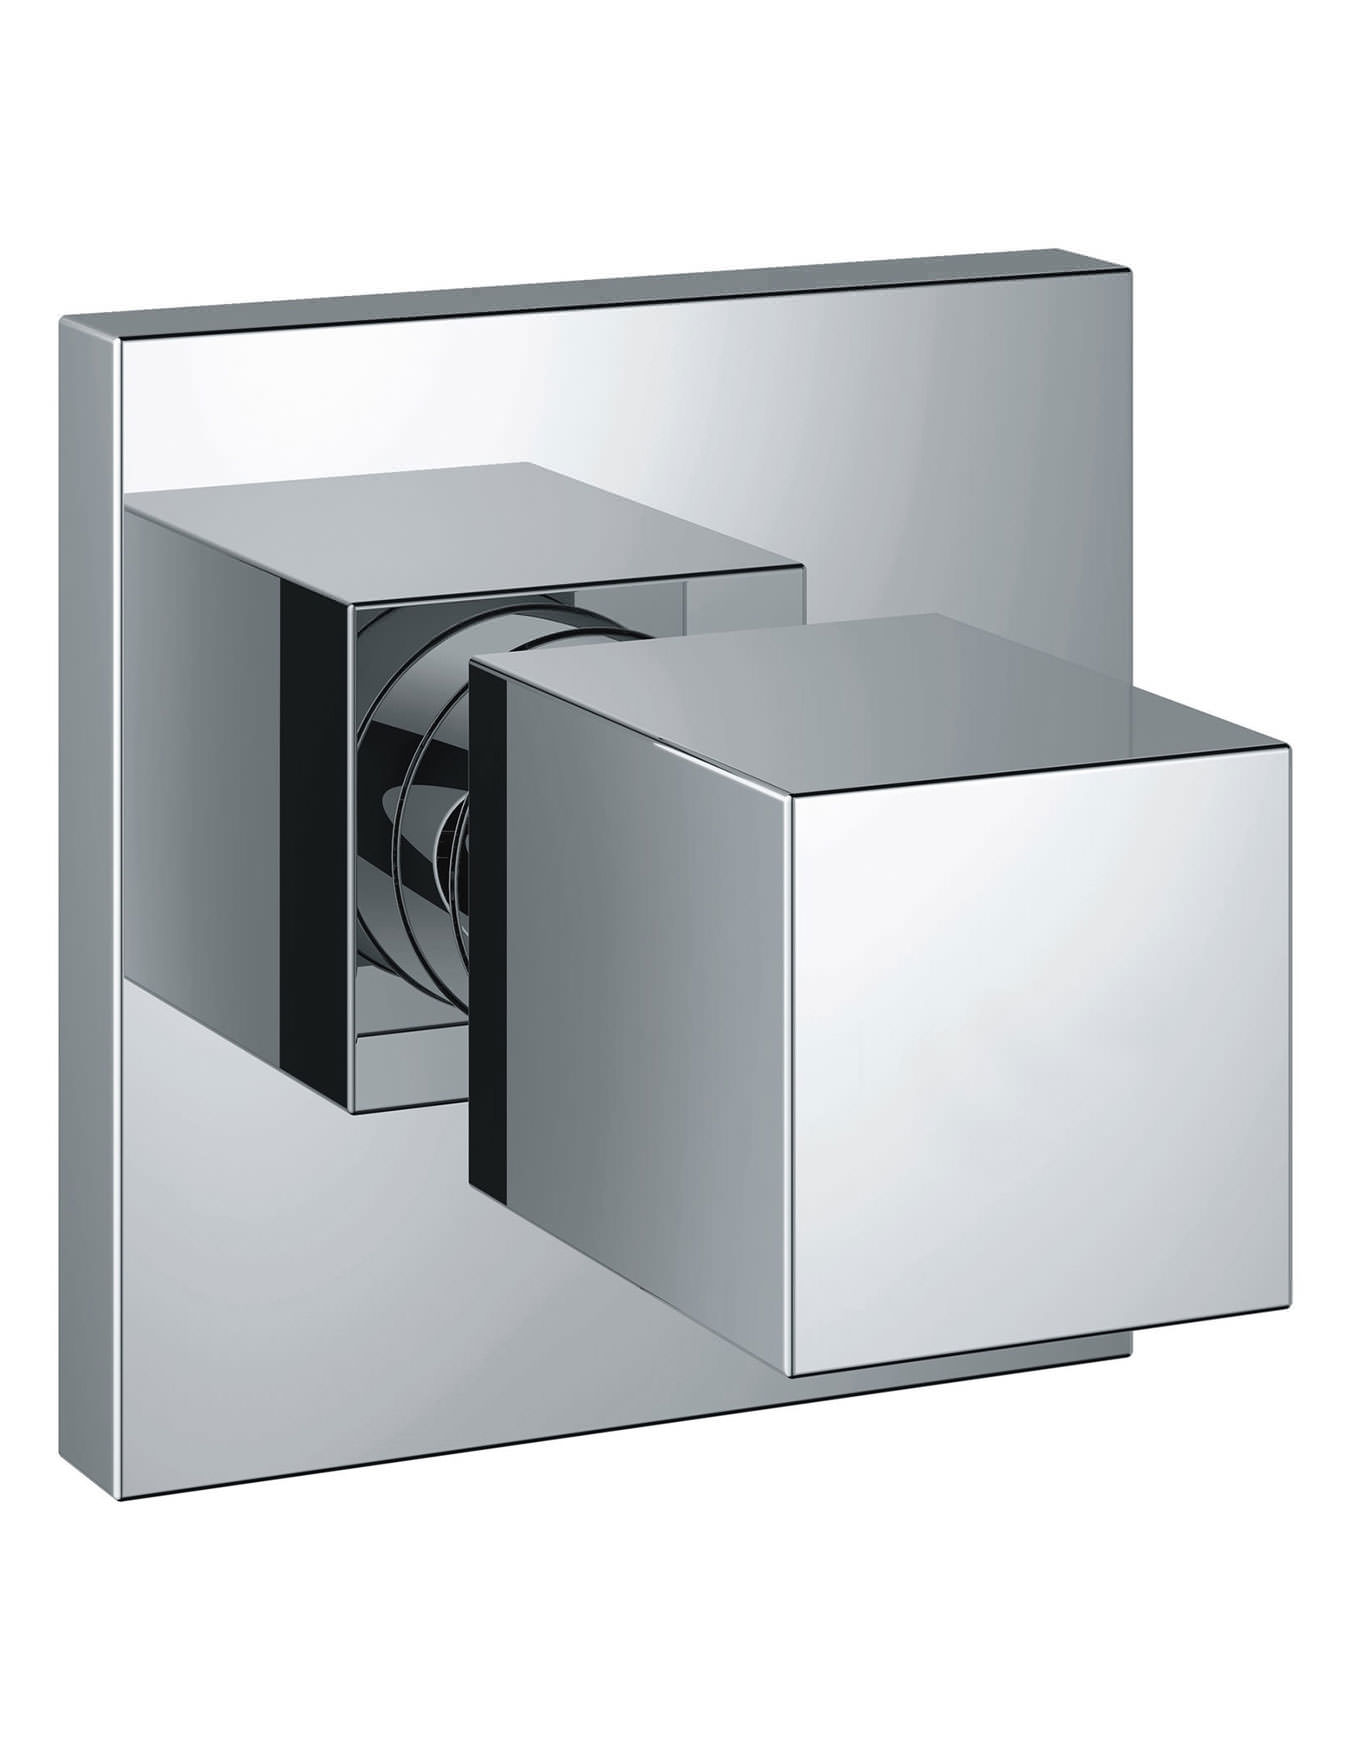 grohe eurocube concealed stop valve trim. Black Bedroom Furniture Sets. Home Design Ideas